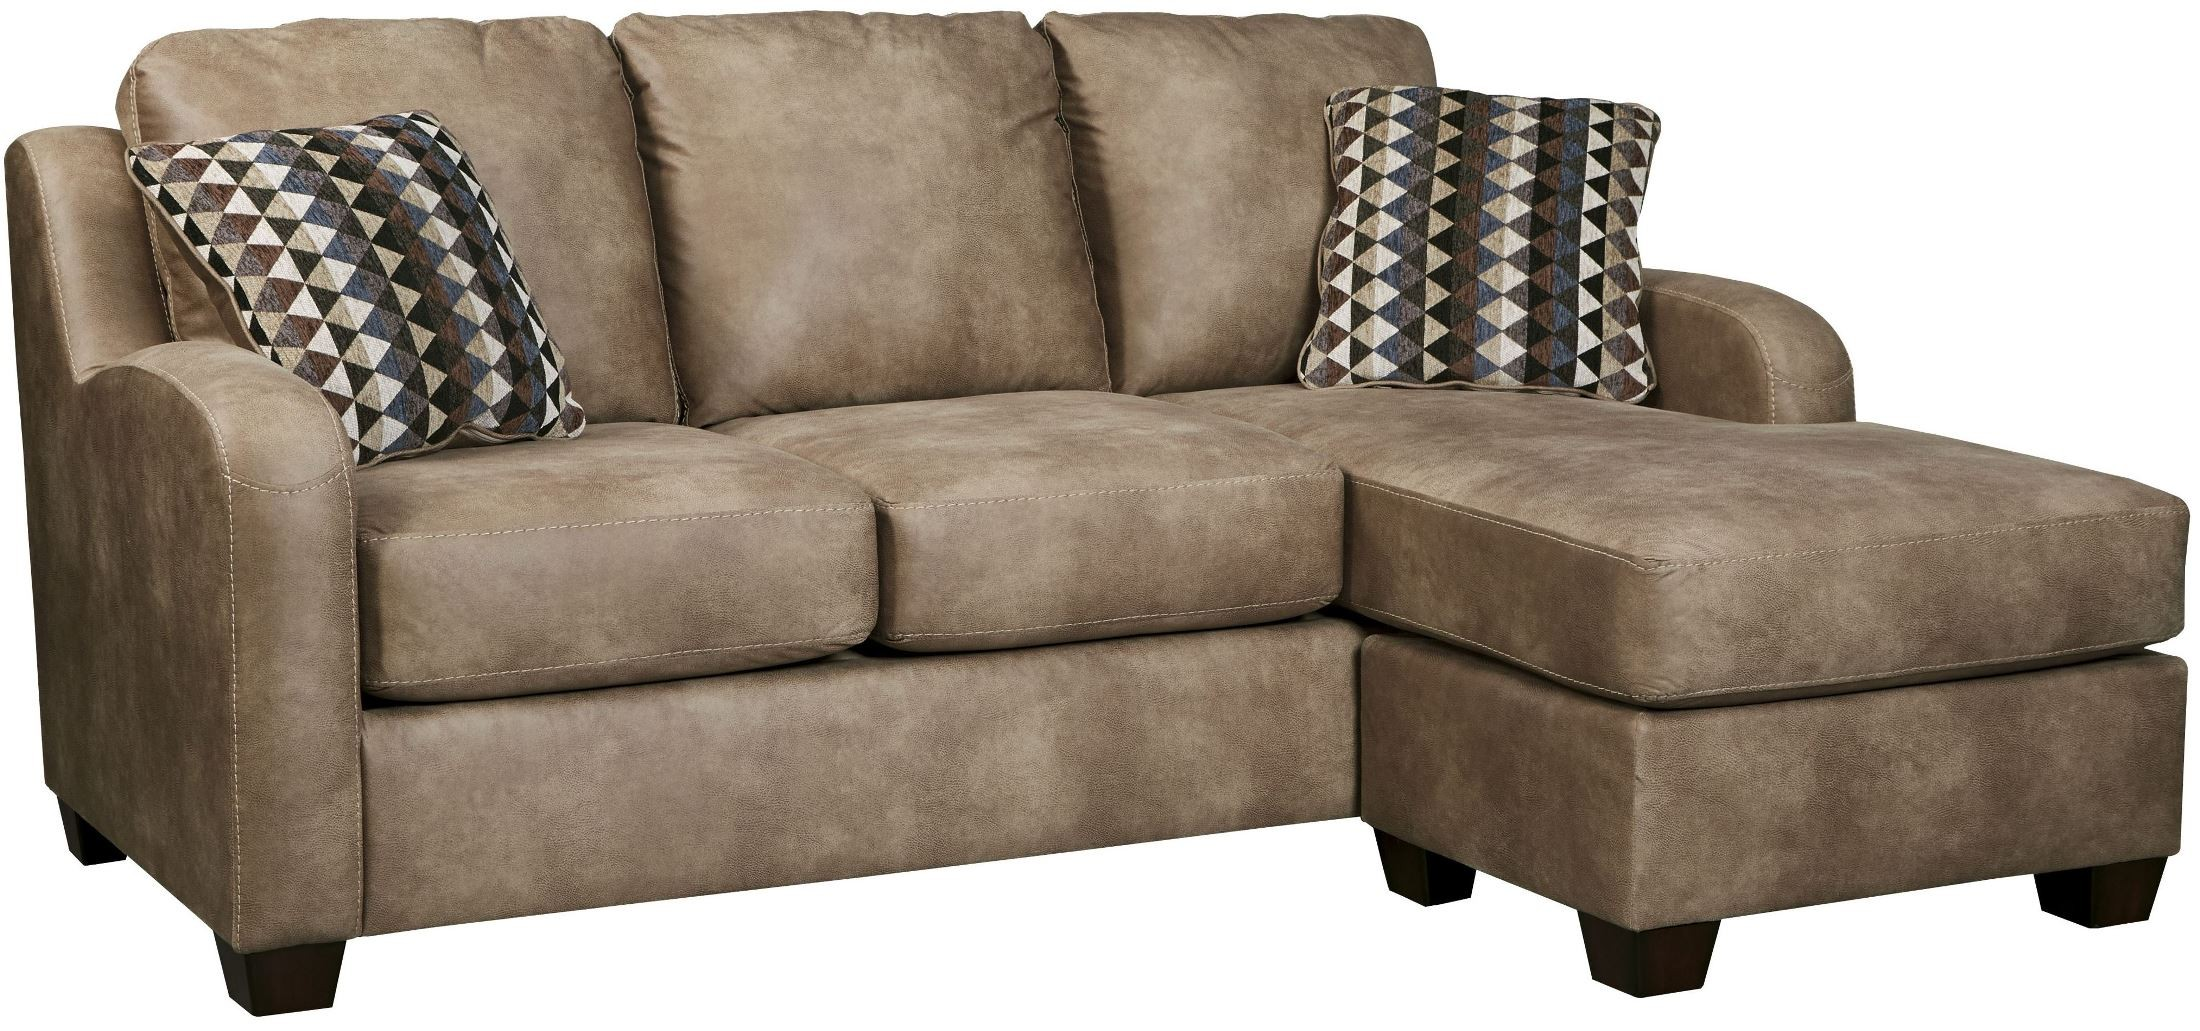 Alturo dune sofa chaise from ashley 6000318 coleman for Chaise lounge ashley